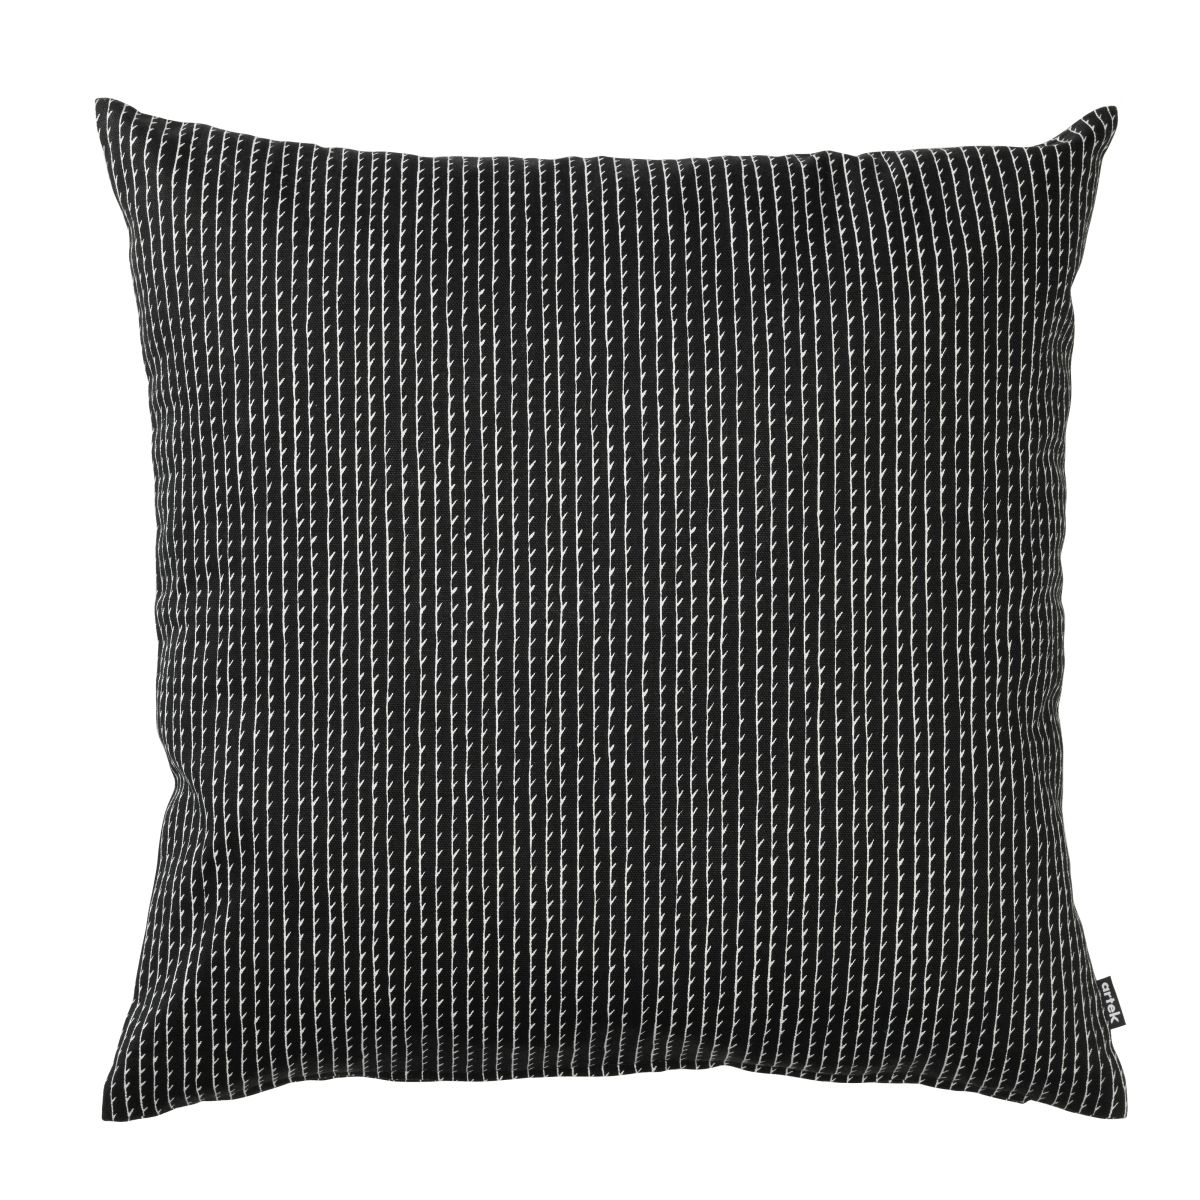 Rivi-Cushion-Cover-Black-_-White-Large_F_Web-2410975